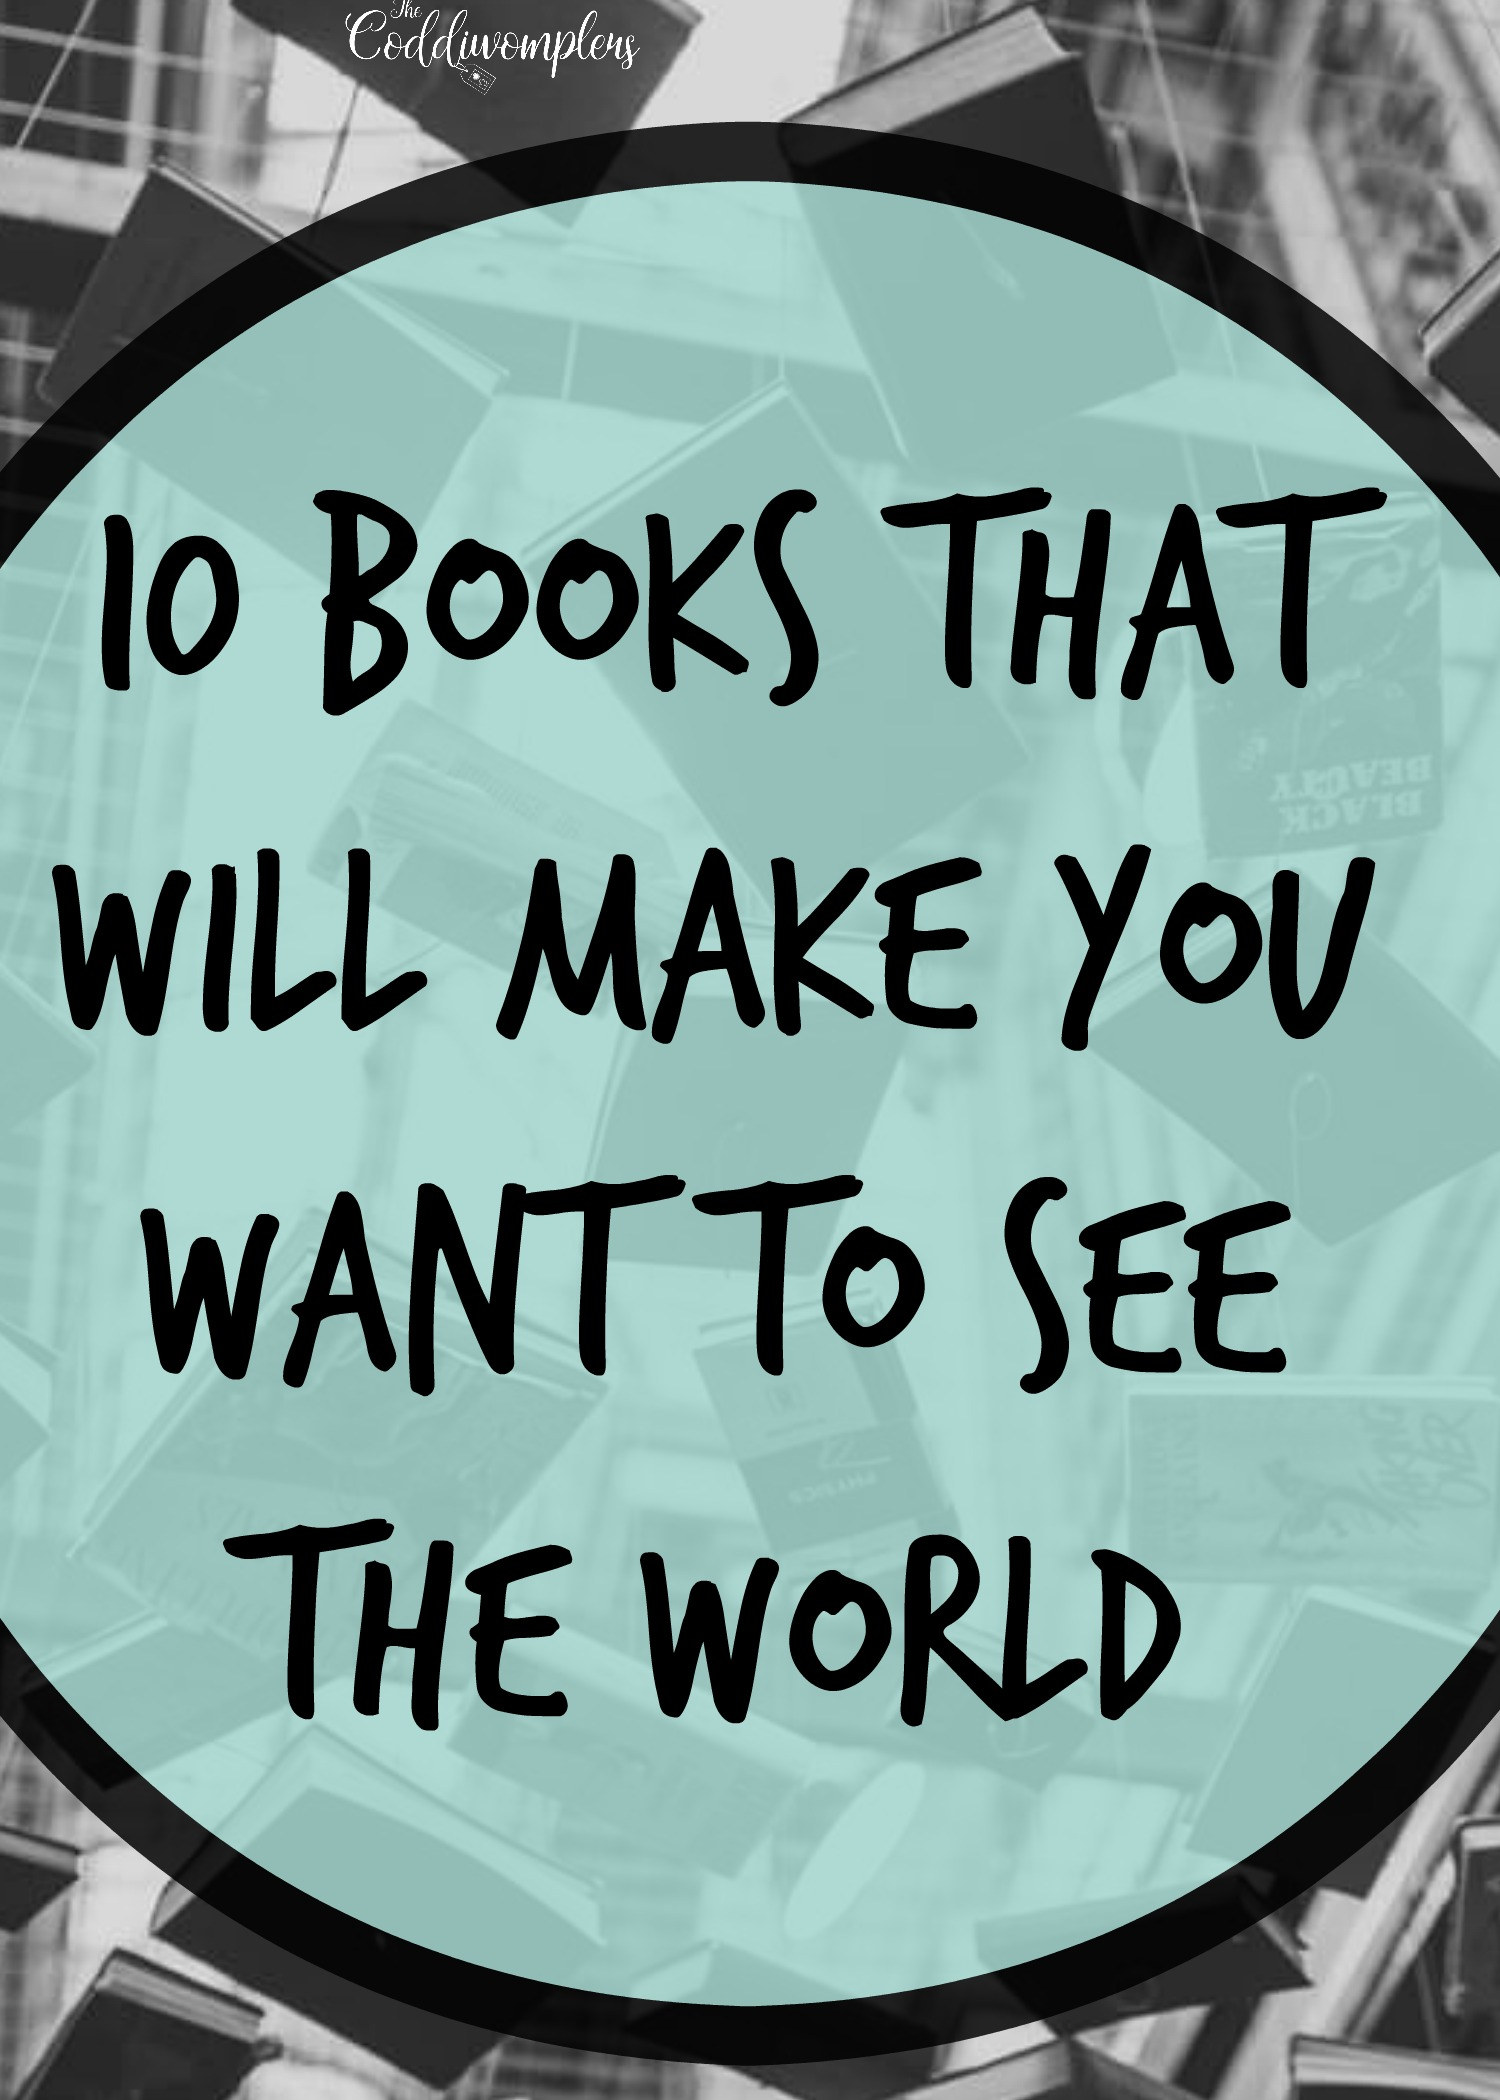 10 Books that will Make you Want to See the World